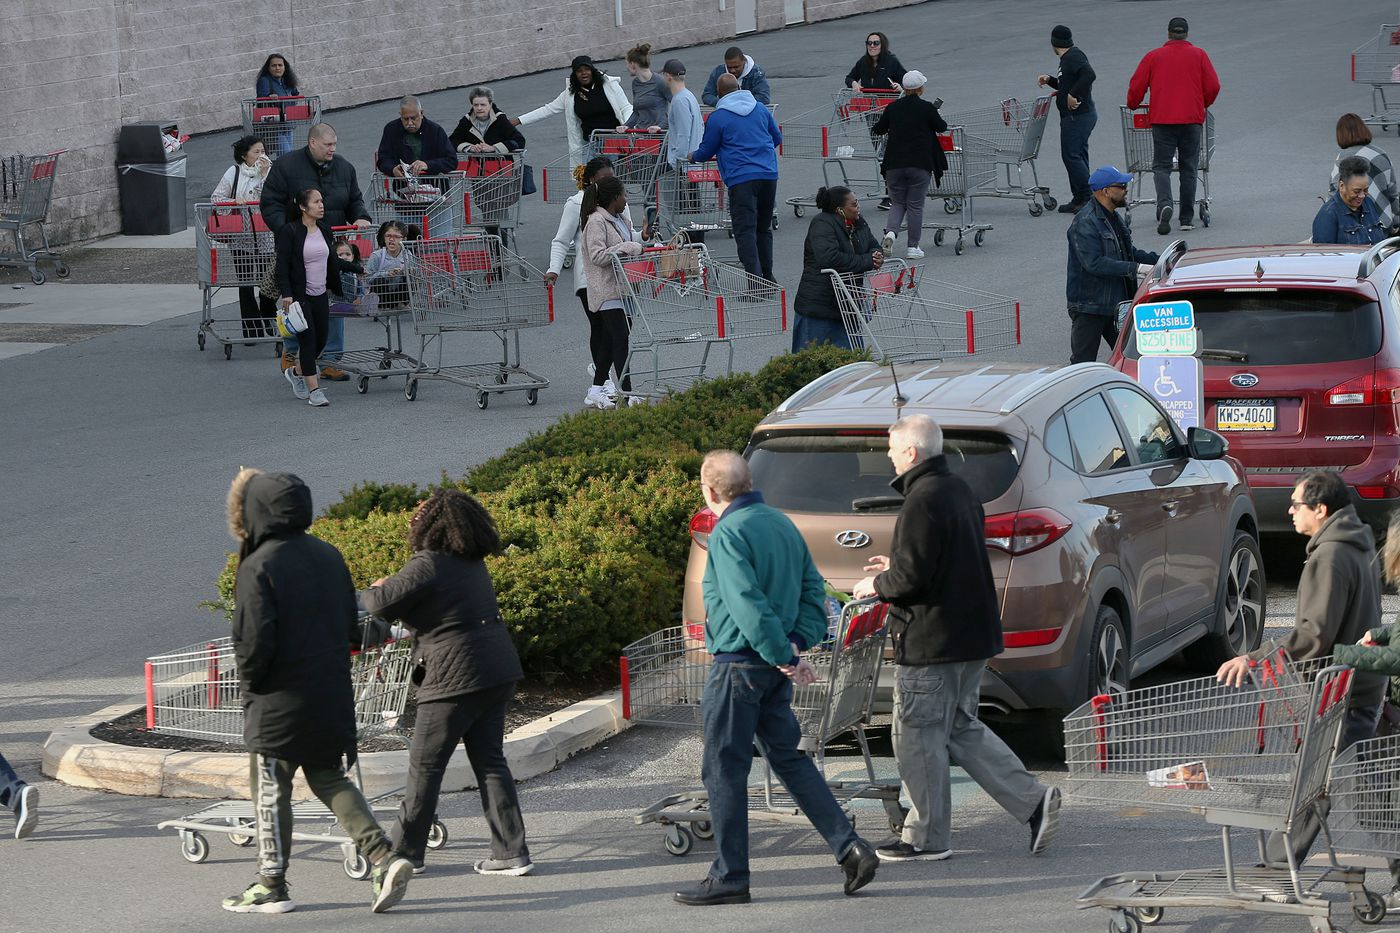 Hundreds of shoppers wind their carts through rows of parking spaces as they line up to enter BJ's Wholesale Club in Springfield when it opened at 9 a.m. on Saturday.